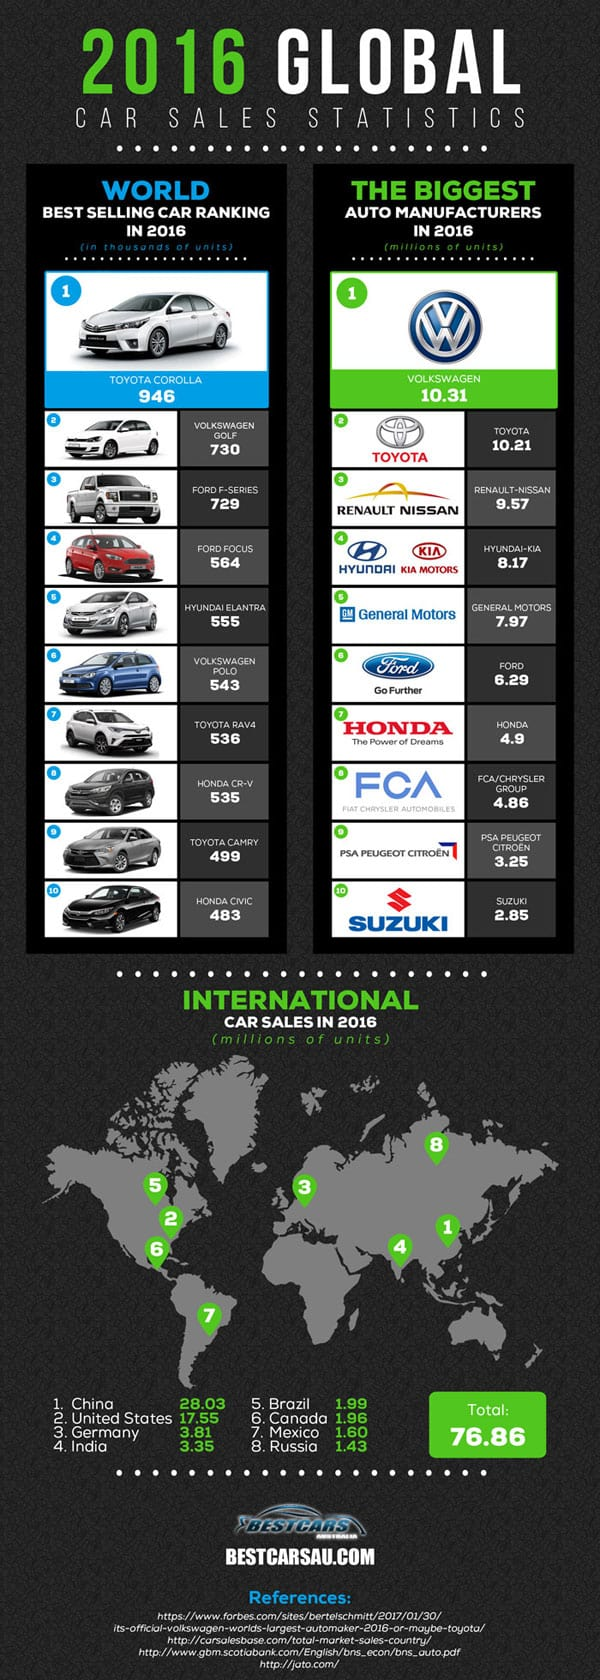 Global Car Sales Infographic 2016